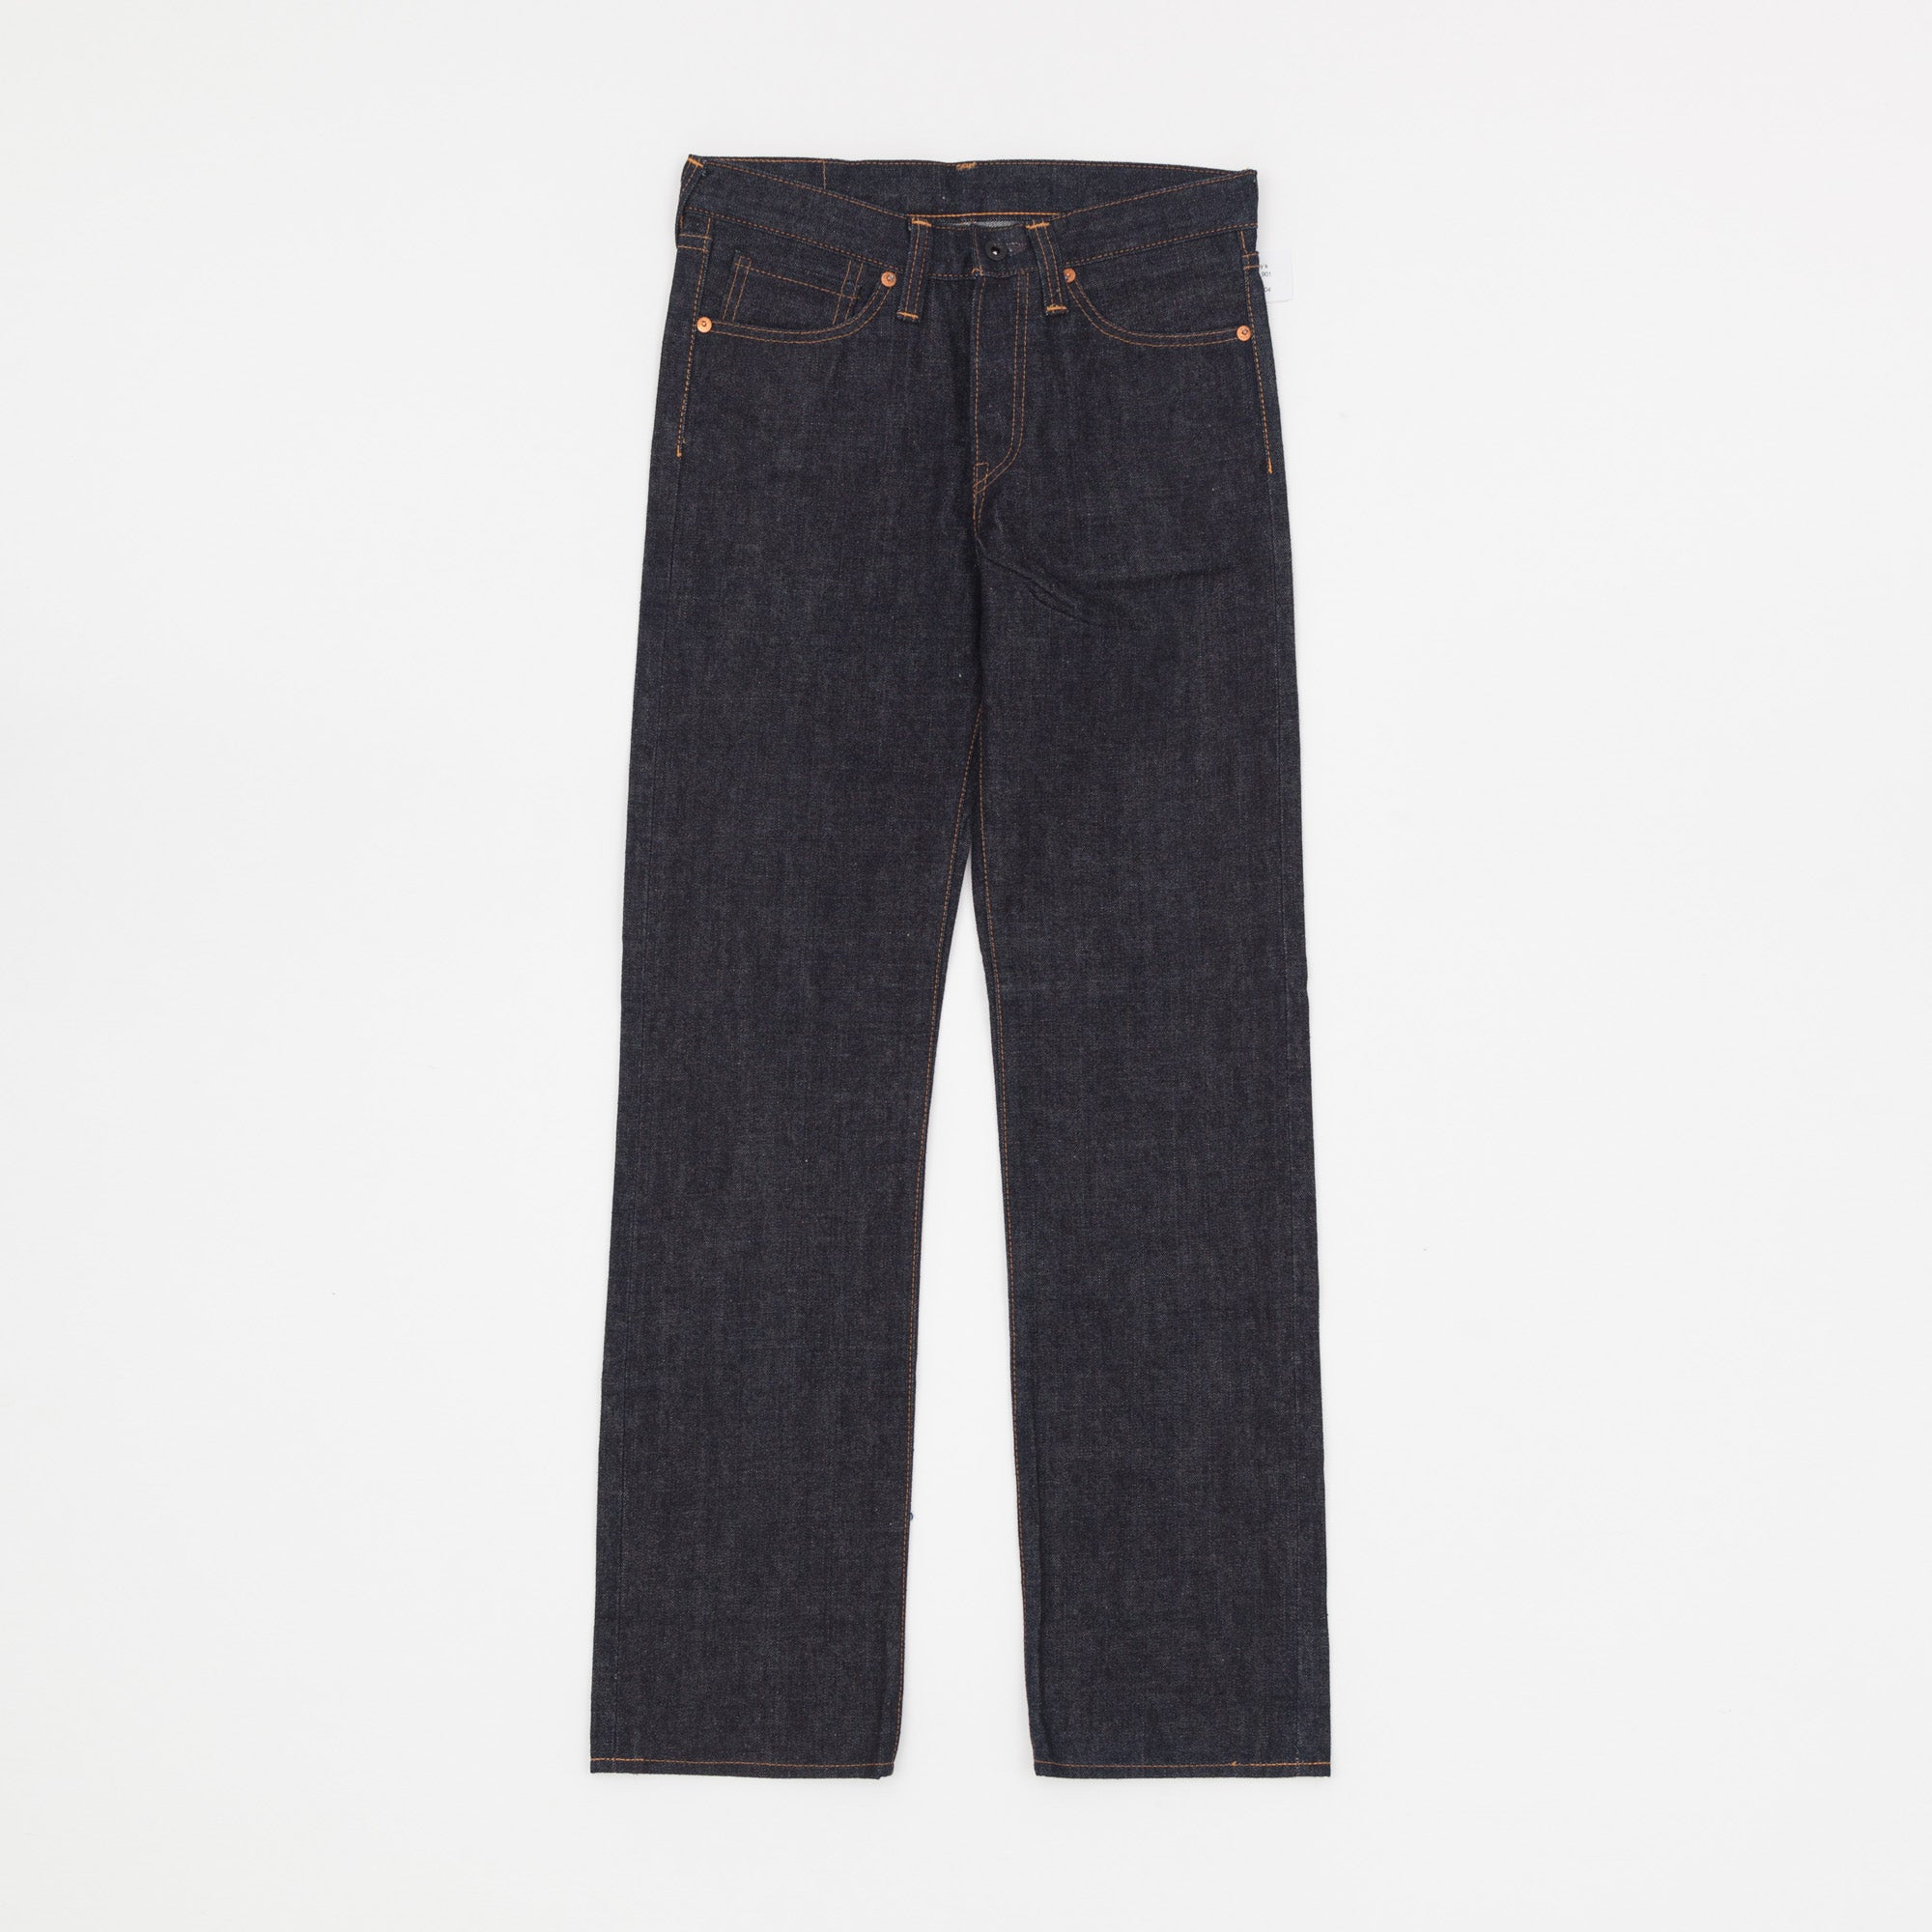 The Real McCoy's Joe McCoy Lot. 901 Denim